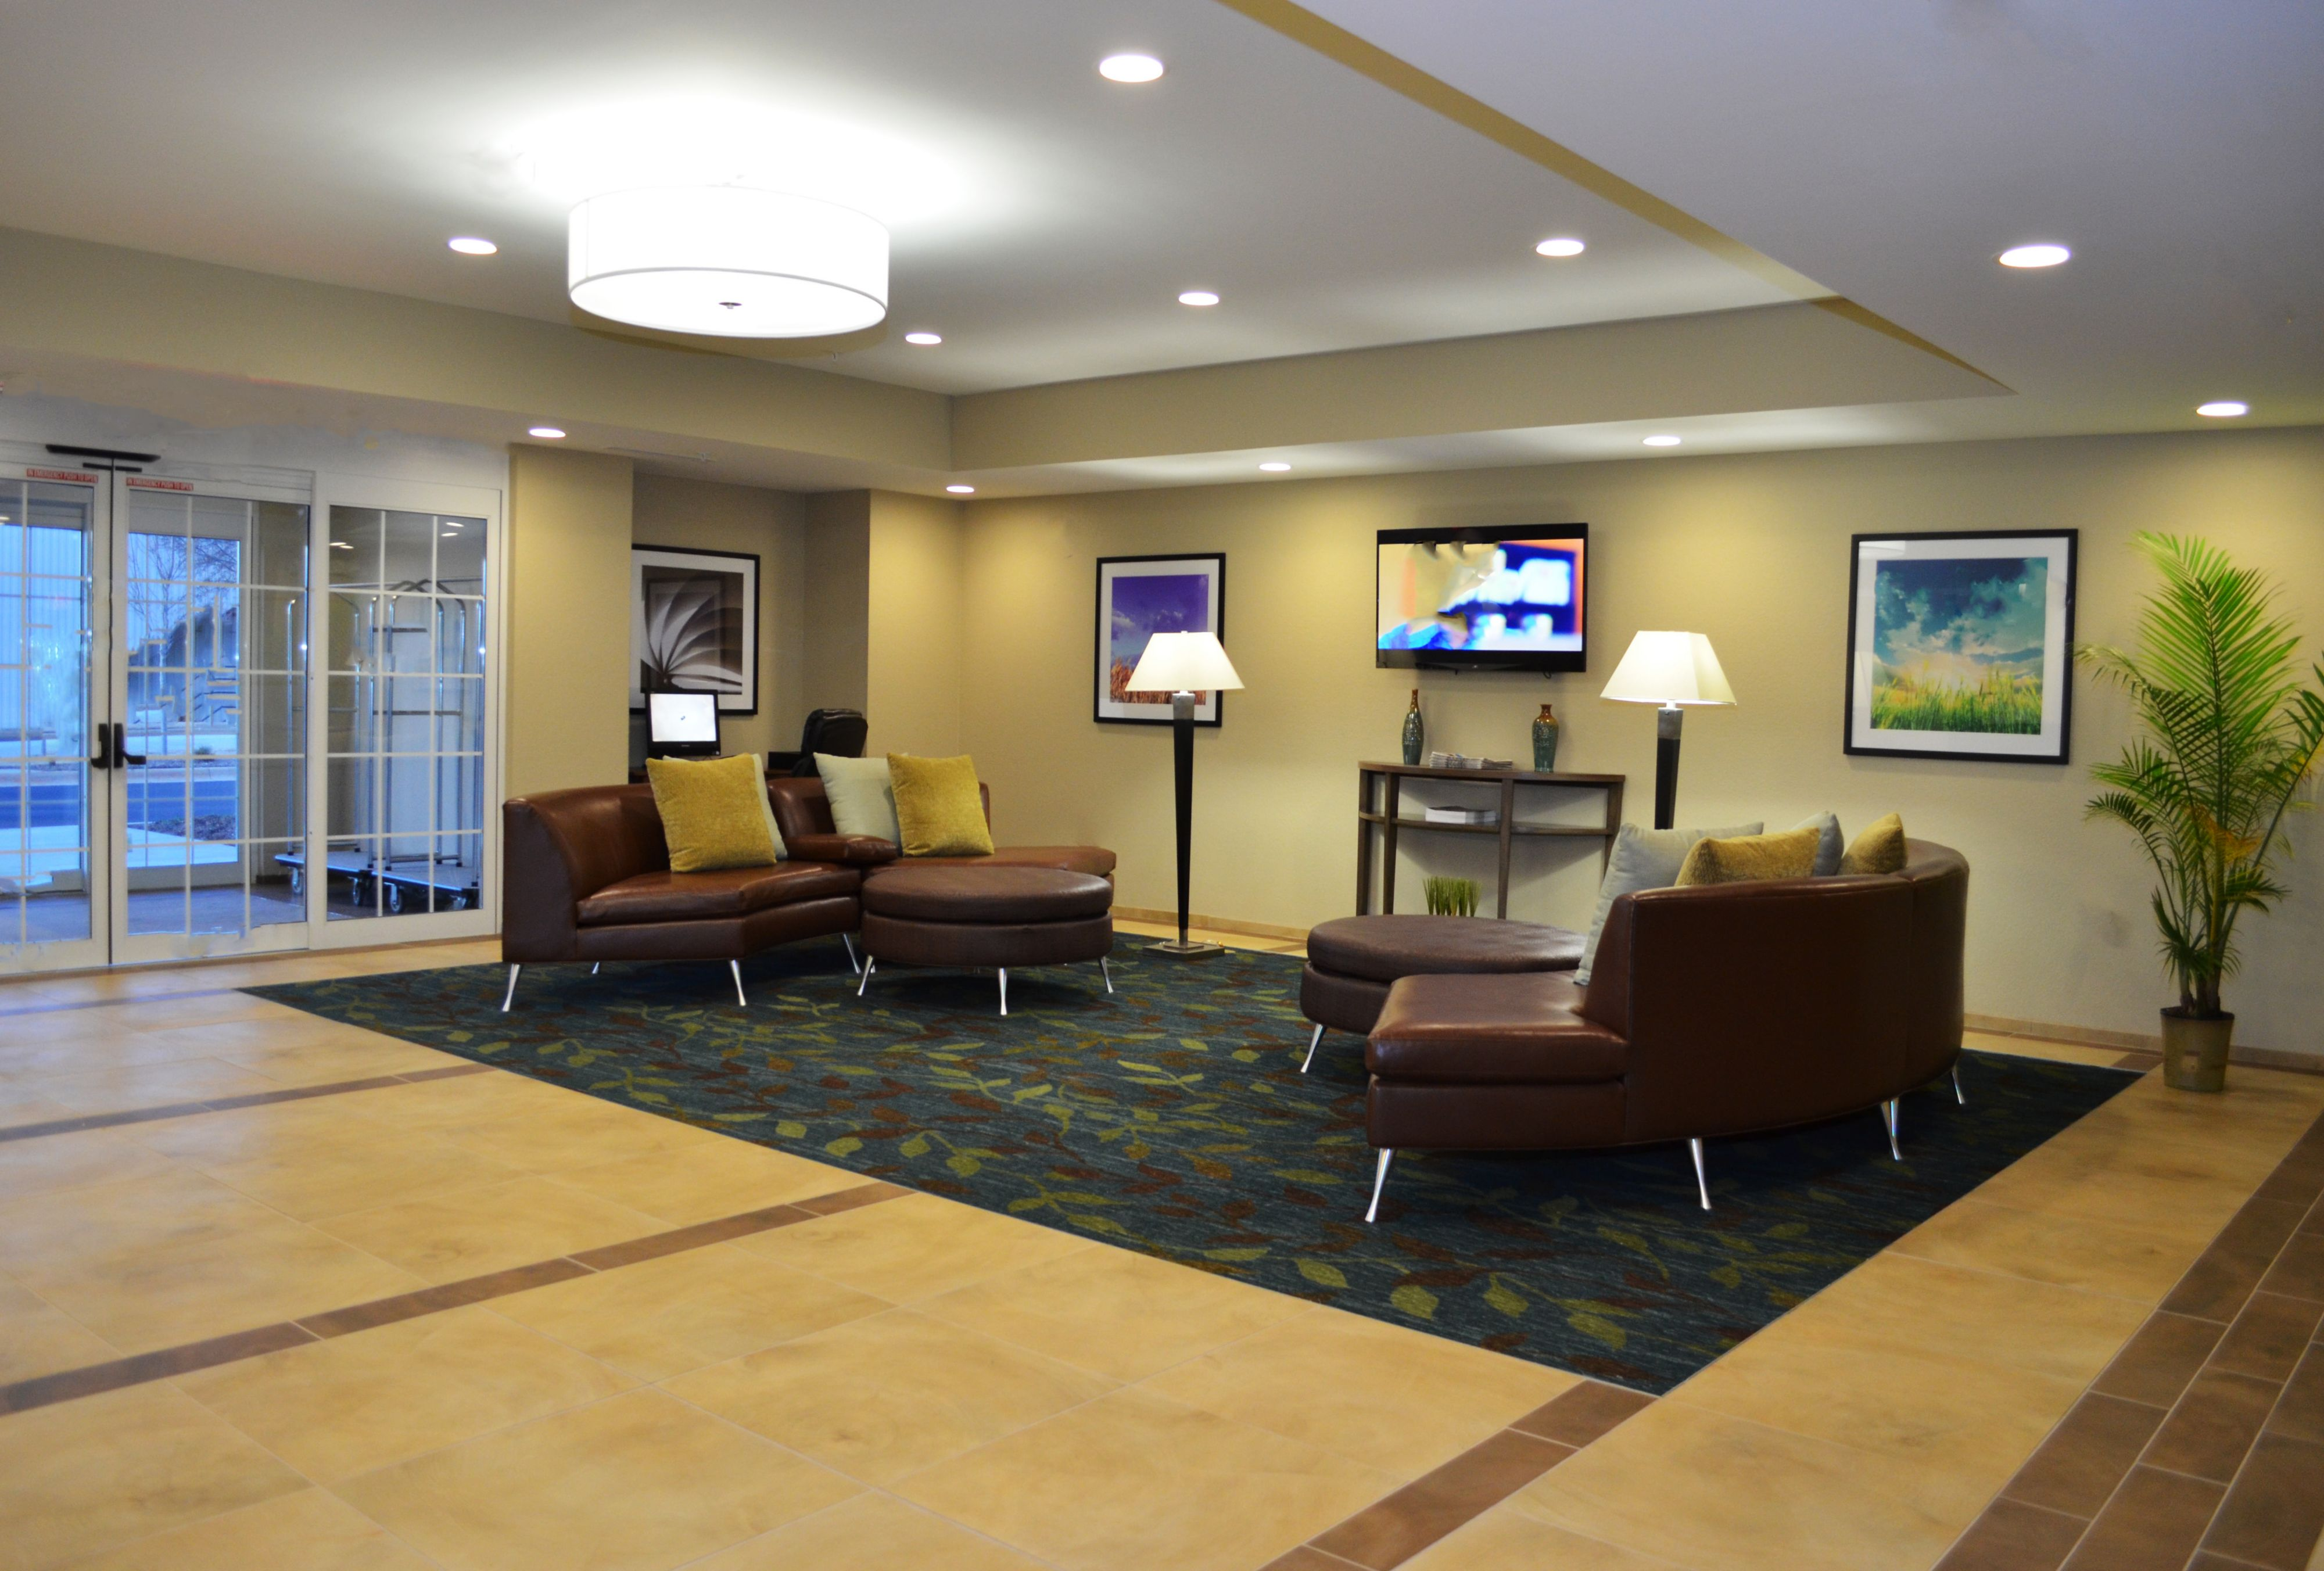 Candlewood Suites Greenville image 4